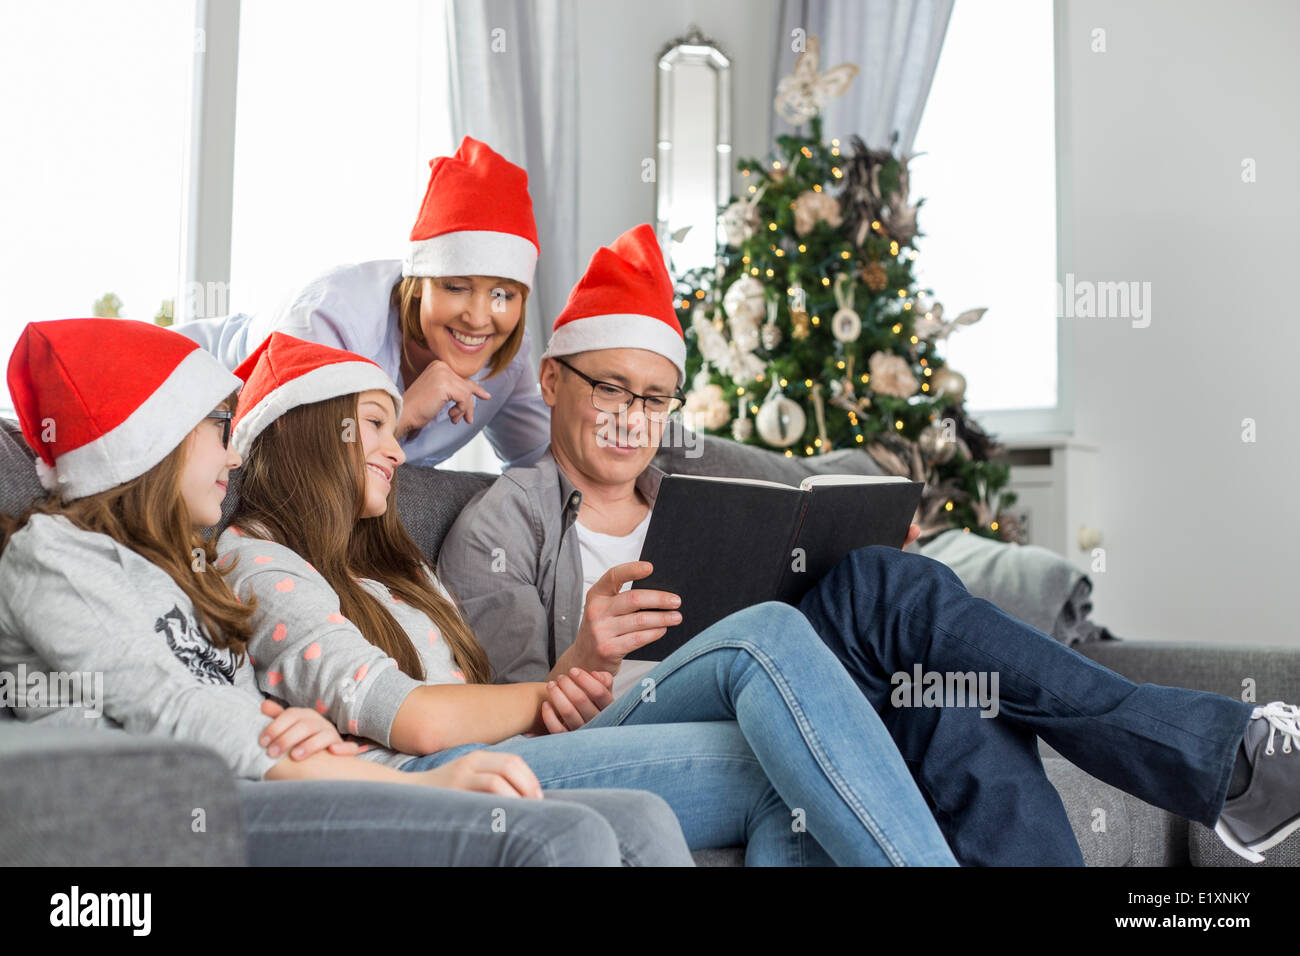 Family of four reading book in living room during Christmas - Stock Image